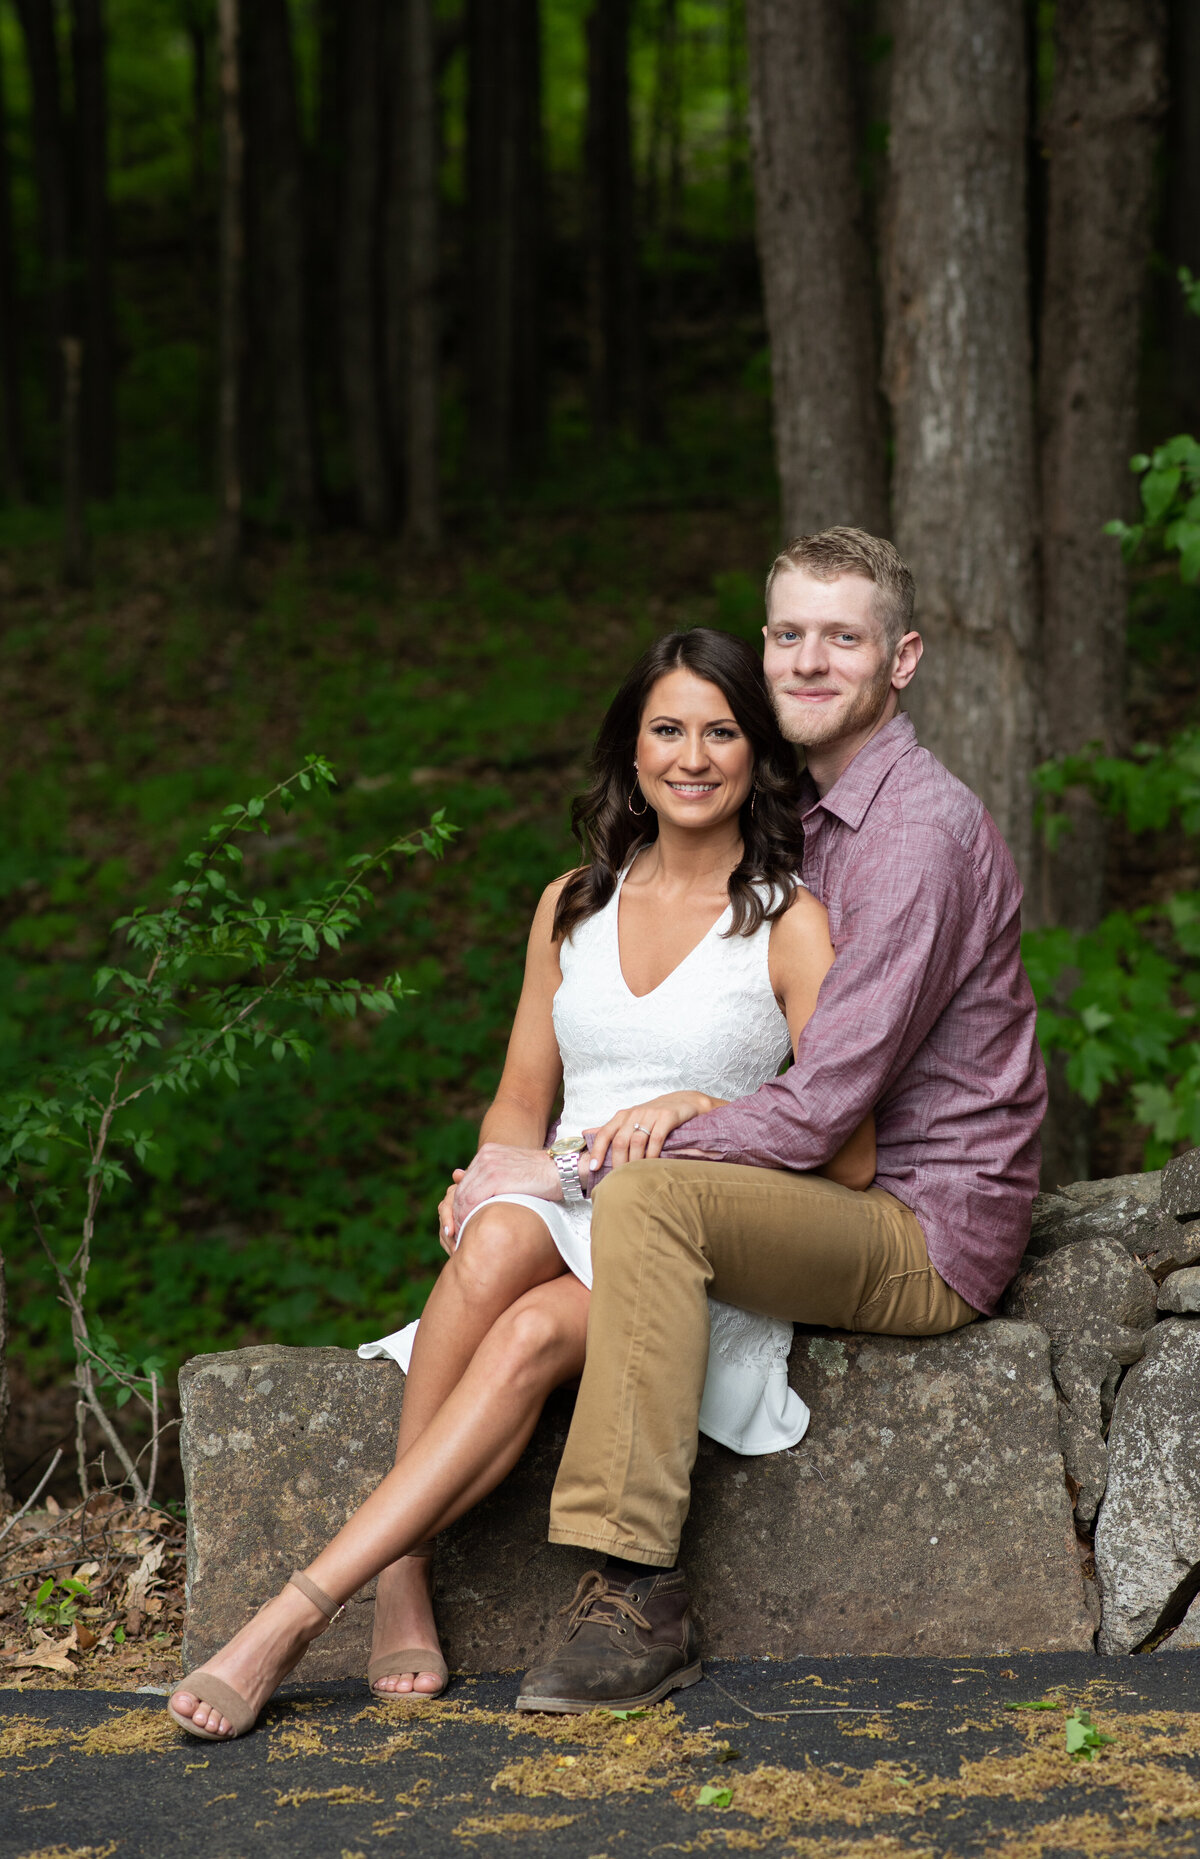 Forcier_Engagement133